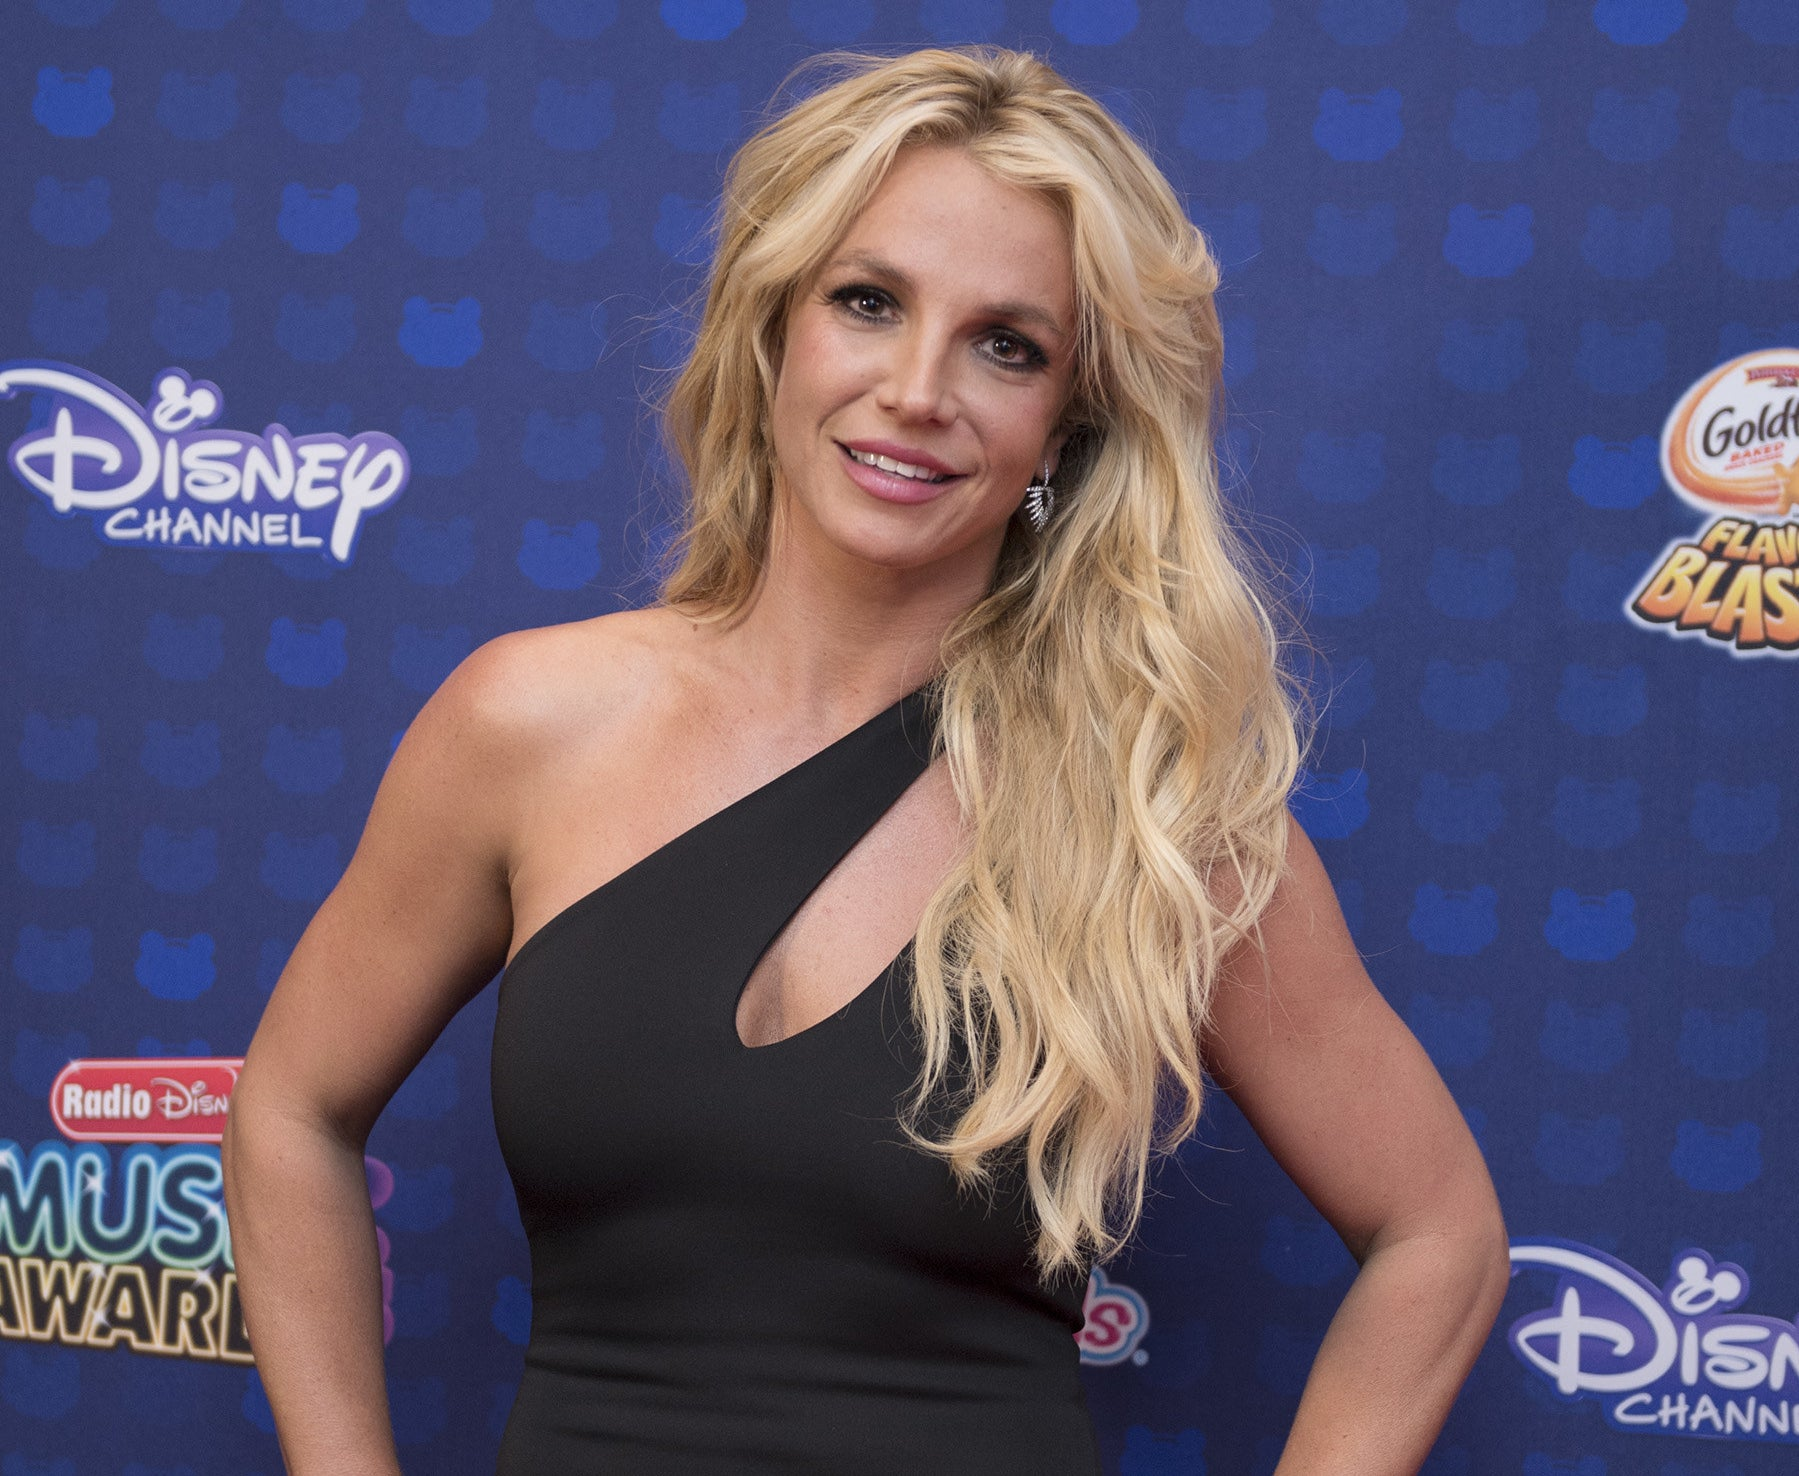 Britney wears a one-shoulder black dress while posing with her hands on her hips